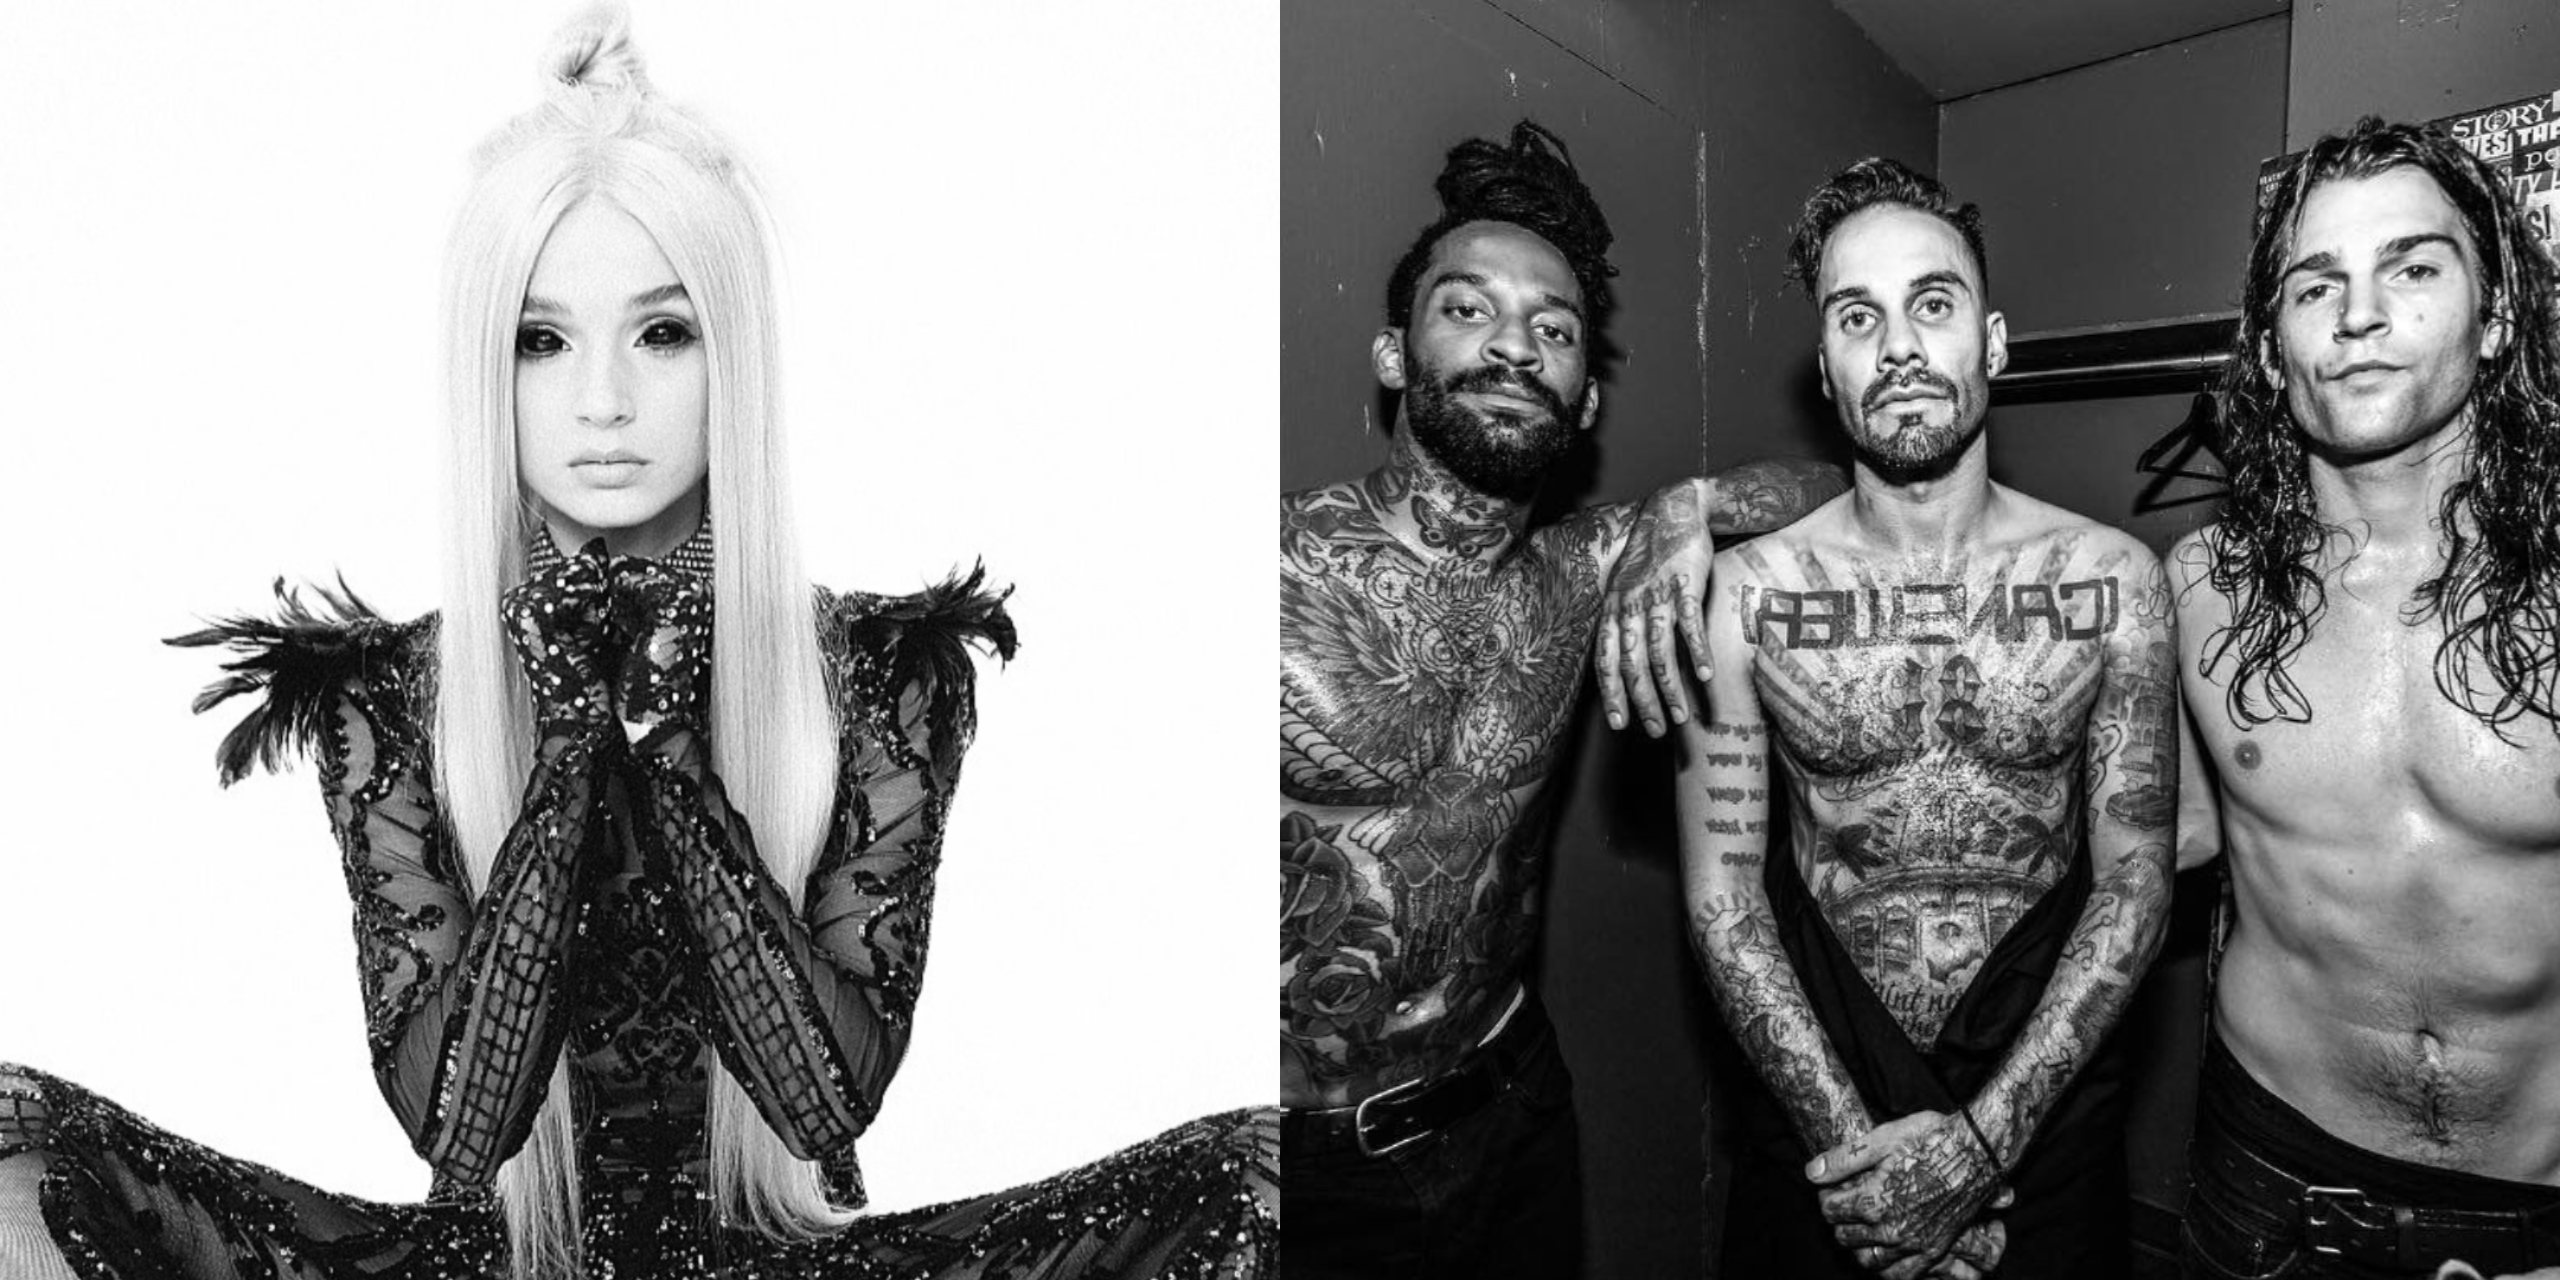 POPPY and Fever 333 collaborate on heavy, perplexing track, 'Scary Mask' – listen